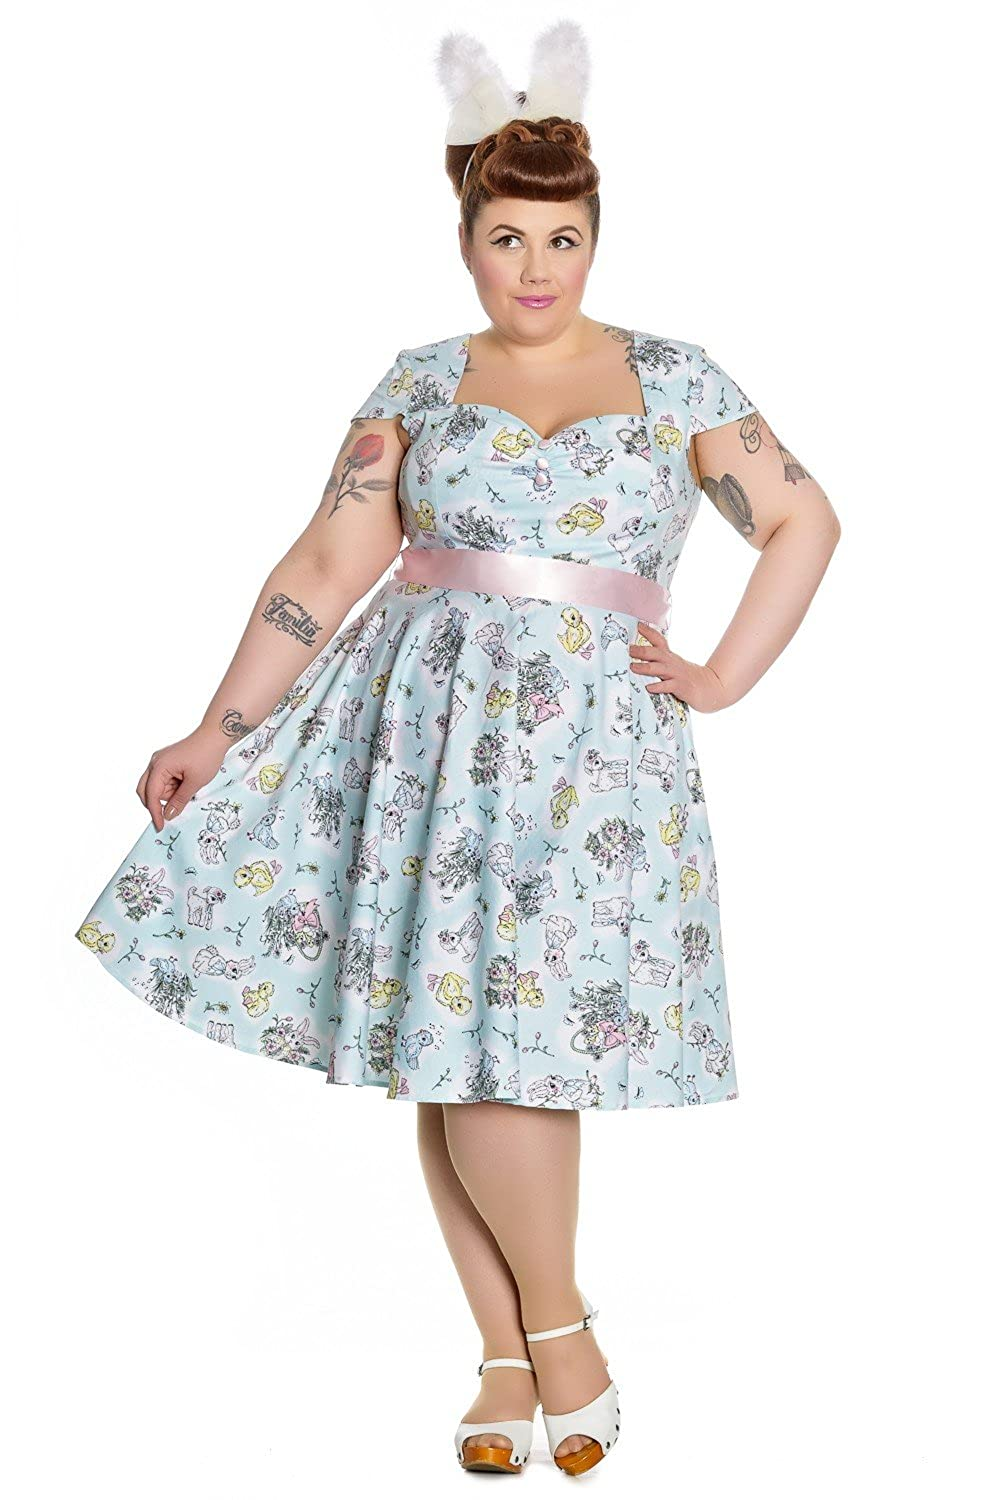 1960s Style Dresses- Retro Inspired Fashion Hell Bunny 60s Vintage Hallmark Easter Bunny Mint Blue Party Dress $79.95 AT vintagedancer.com